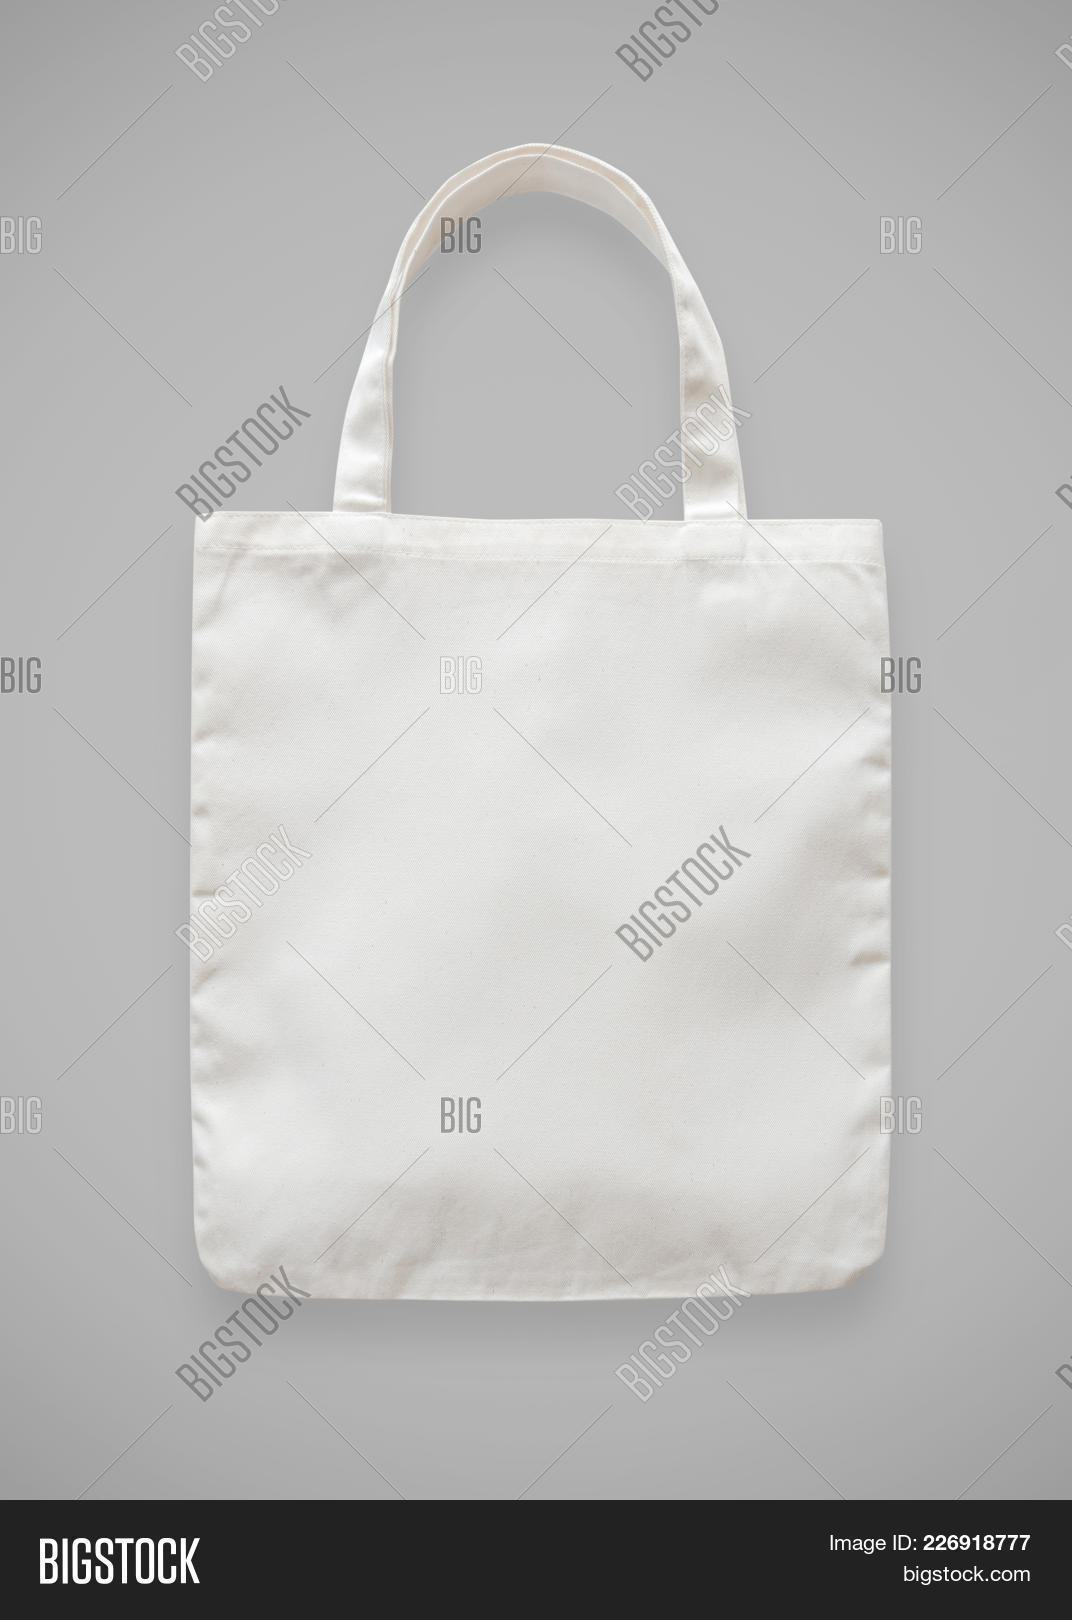 Canvas Tote Bag Mockup Blank White Eco Ping Sack Template Made Of Fabric Cloth Isolated On